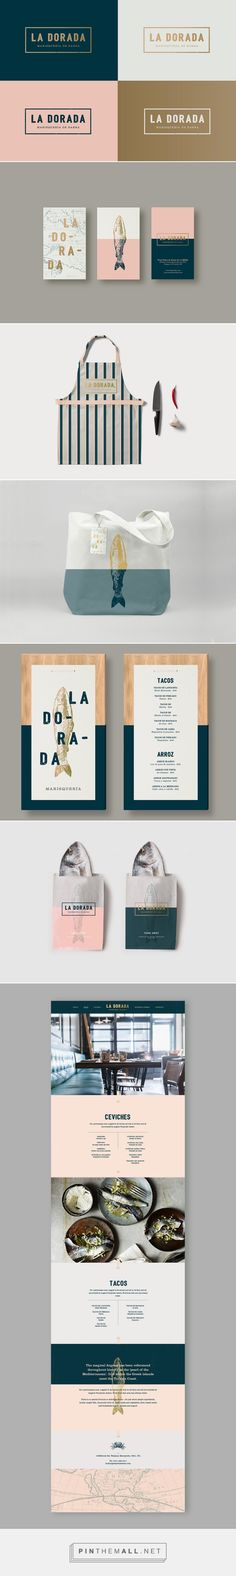 Food Inspiration - La Dorada packaging branding on Behance curated by Packaging Diva PD. Who's up for fish for lunch : ) PD. - a grouped images picture - business branding Graphisches Design, Logo Design, Brand Identity Design, Graphic Design Branding, Typography Design, Brand Design, Menu Design, Stationery Design, Business Branding